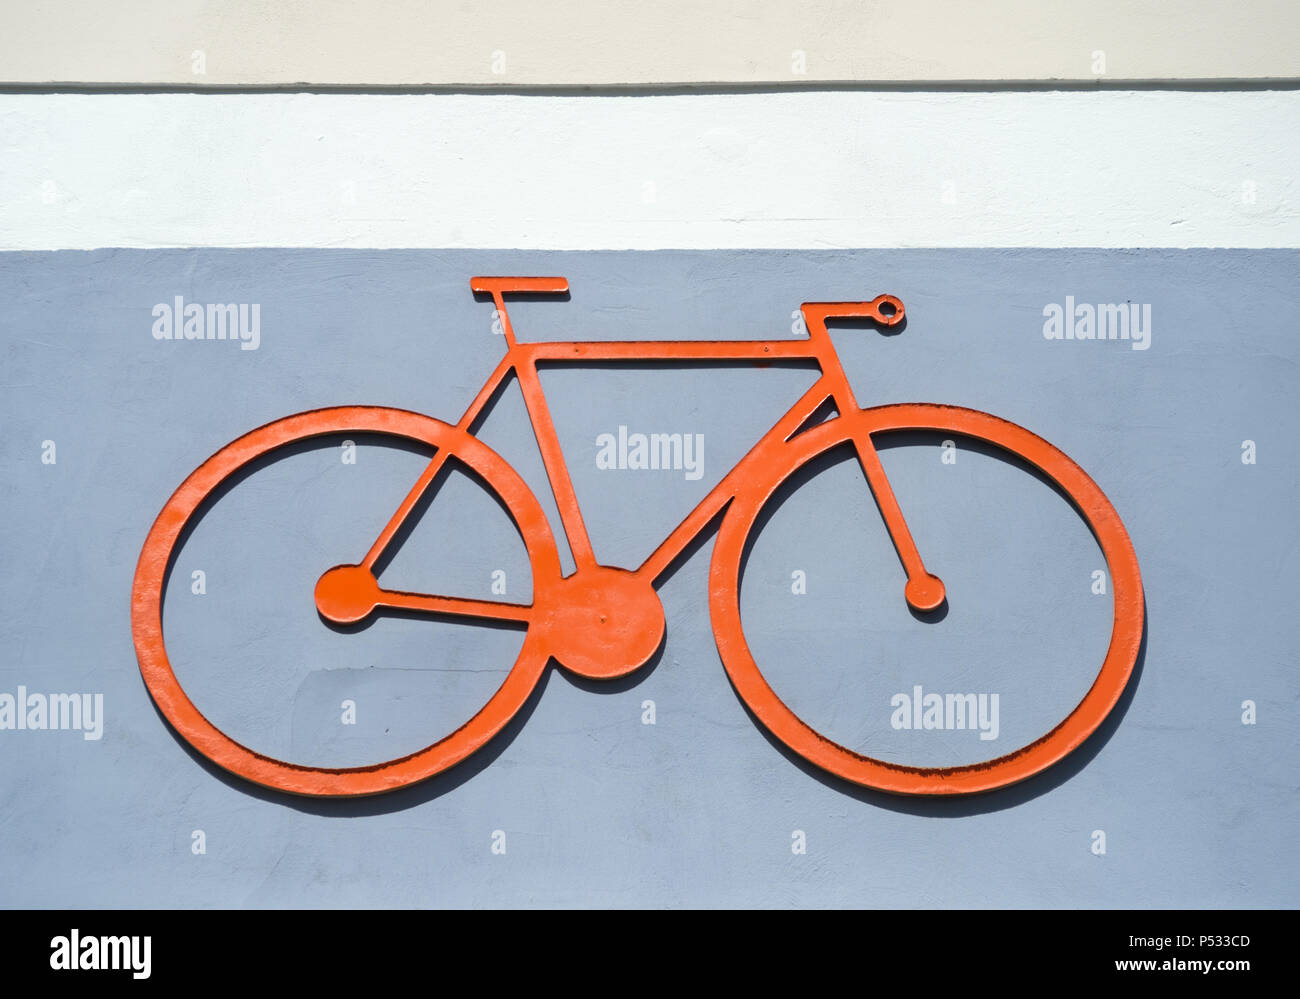 The pictogram of a bicycle on a house wall - Stock Image